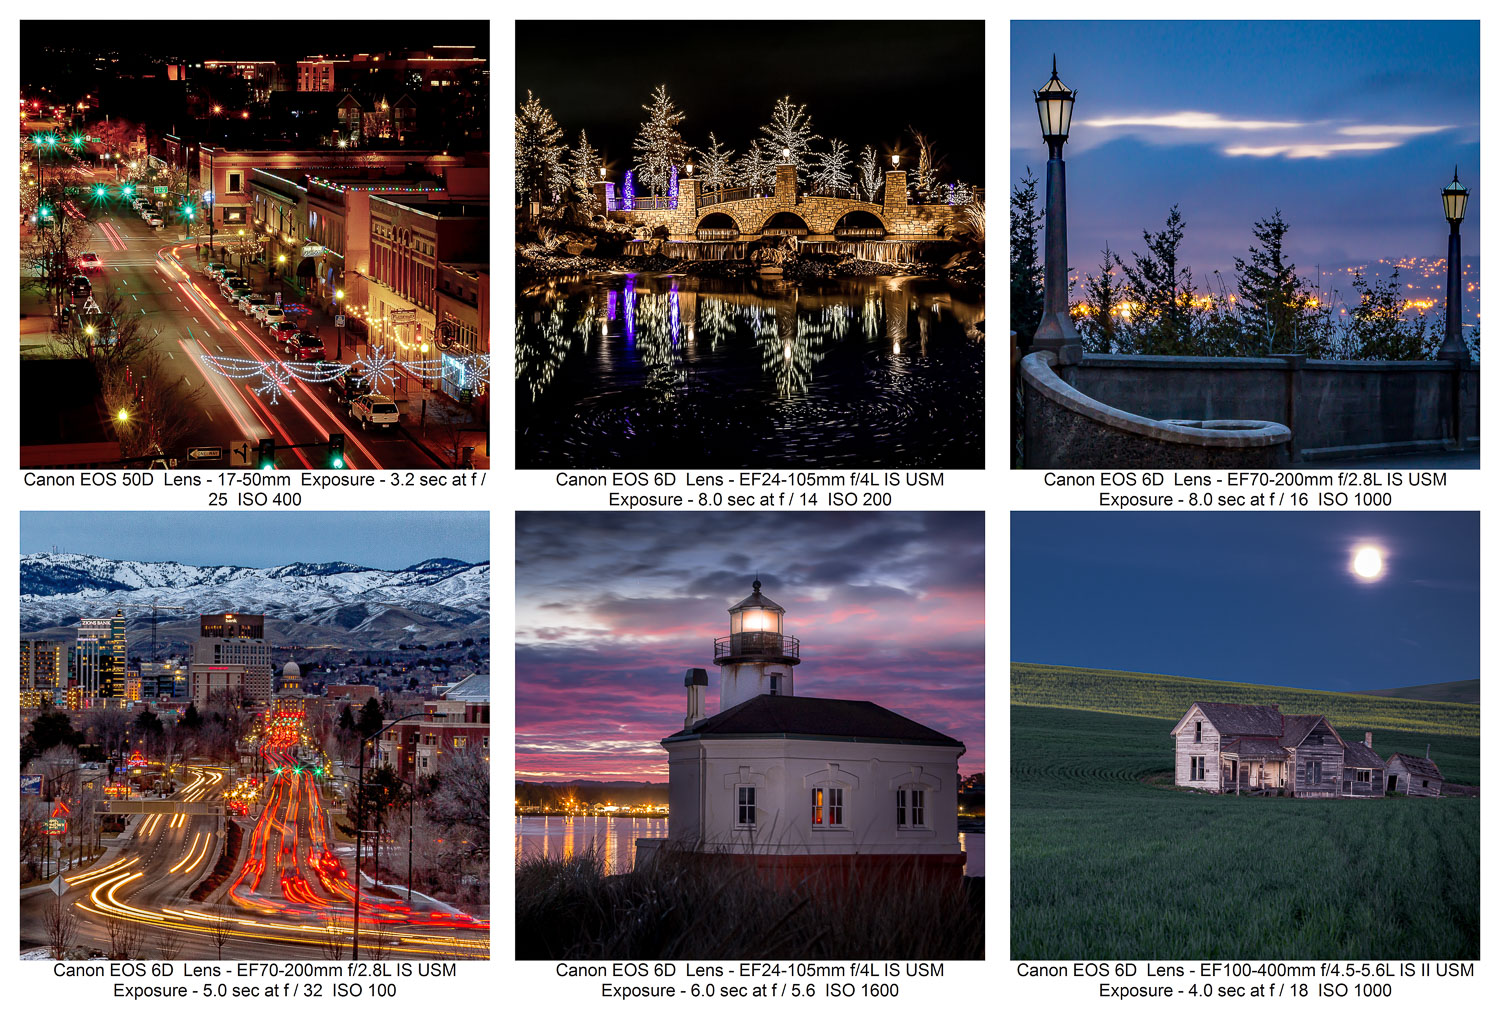 Fun 5-Second Photos - Using Long Exposures for Creative Images